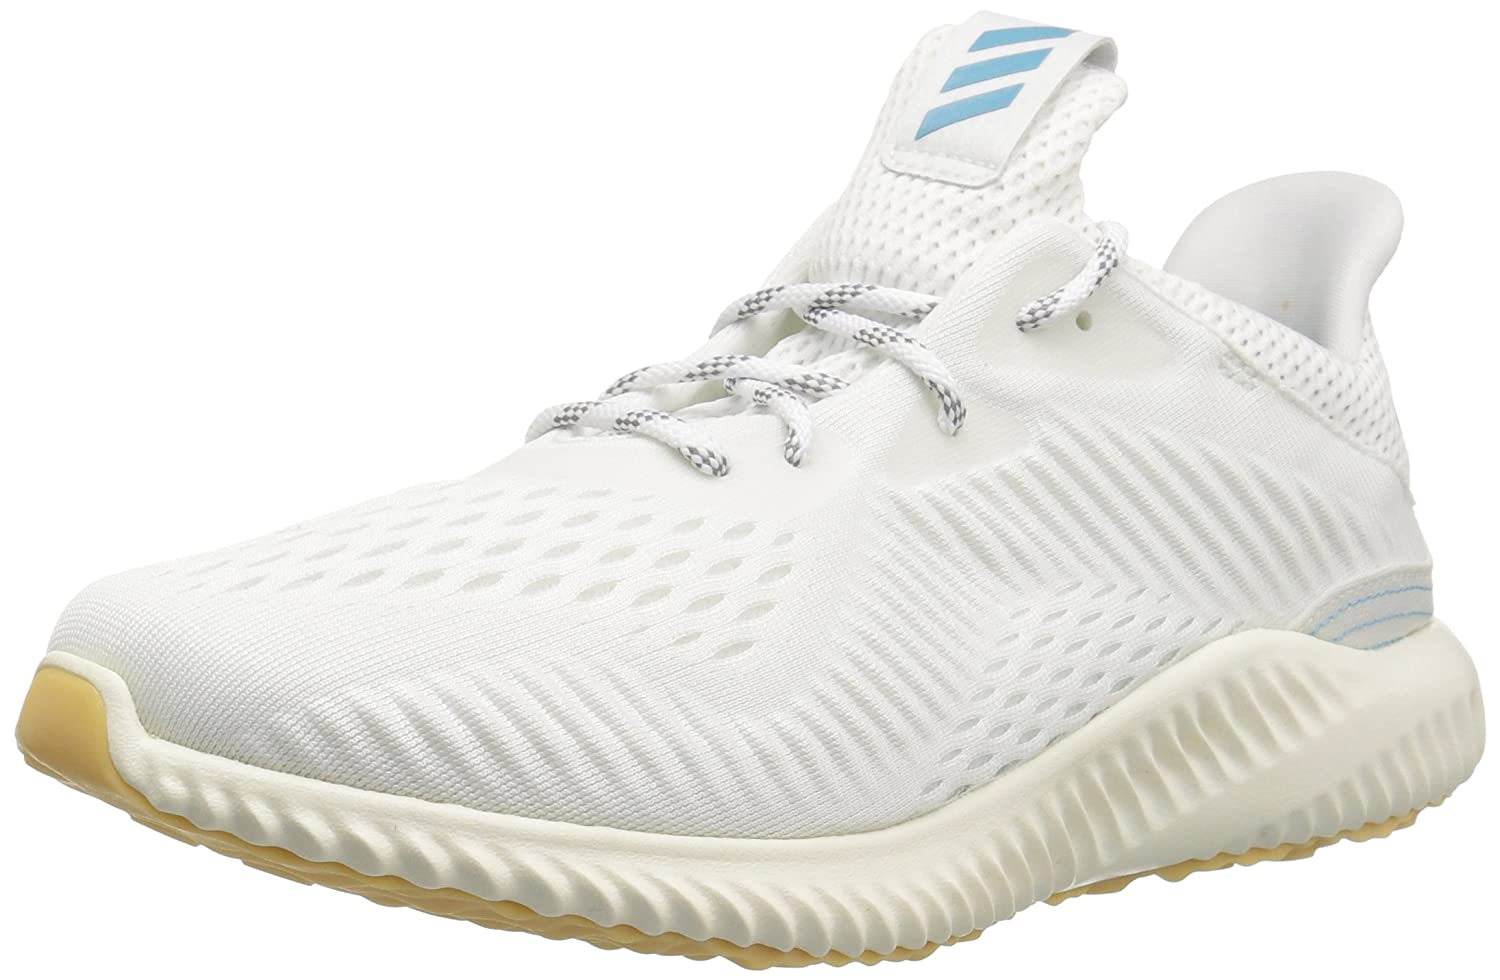 adidas Women's Alphabounce 1 Parley W Running Shoe B071Z73FFV 8 B(M) US|Noble Indigo/Vapour Blue/White